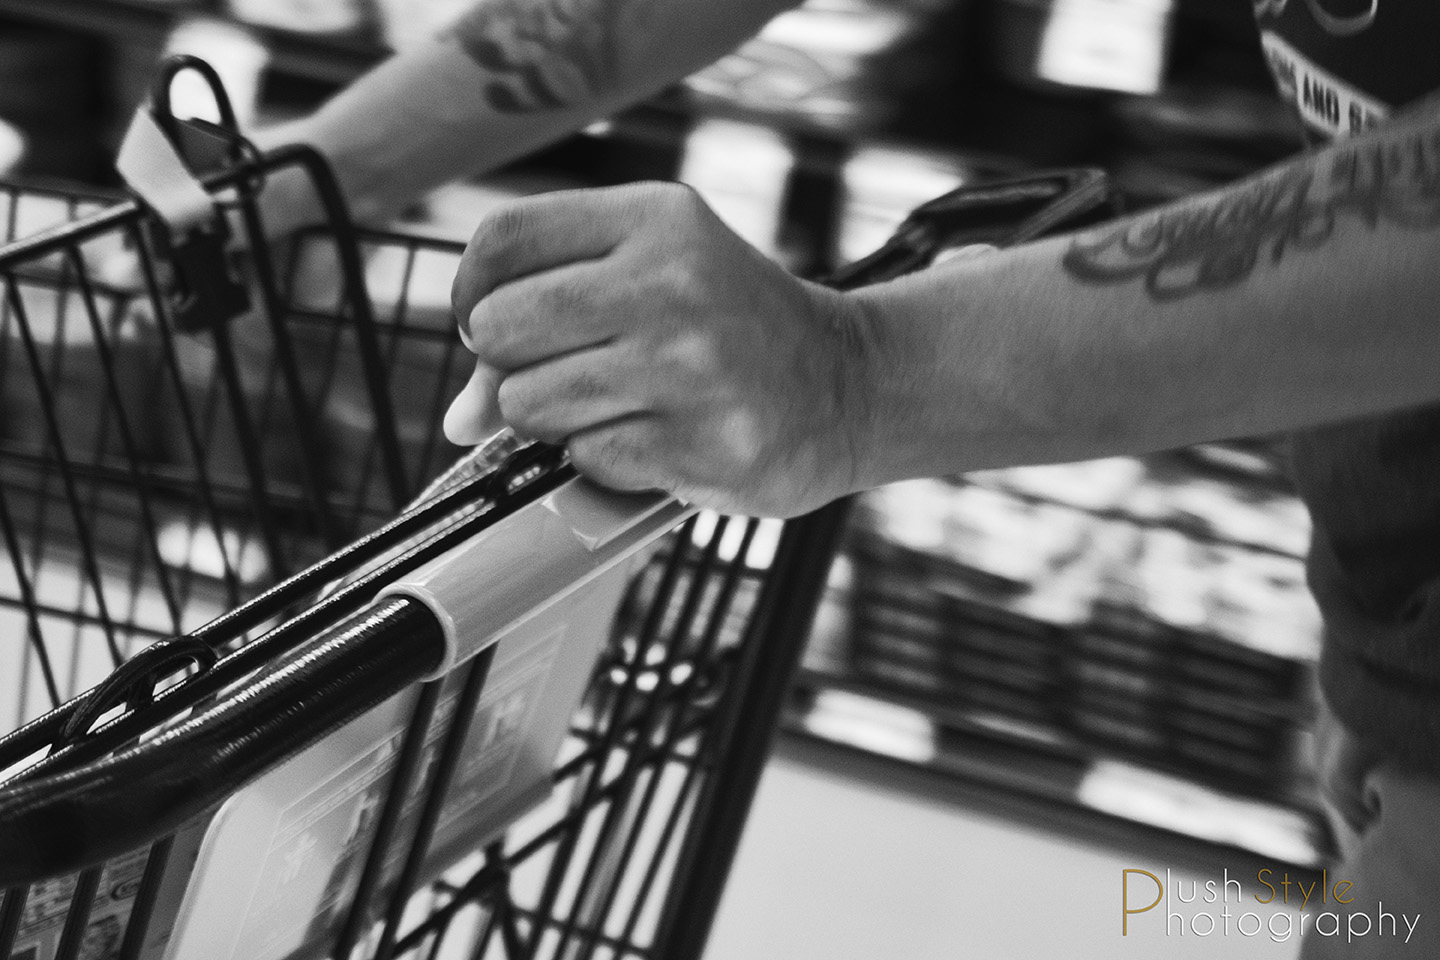 hands on grocery cart image